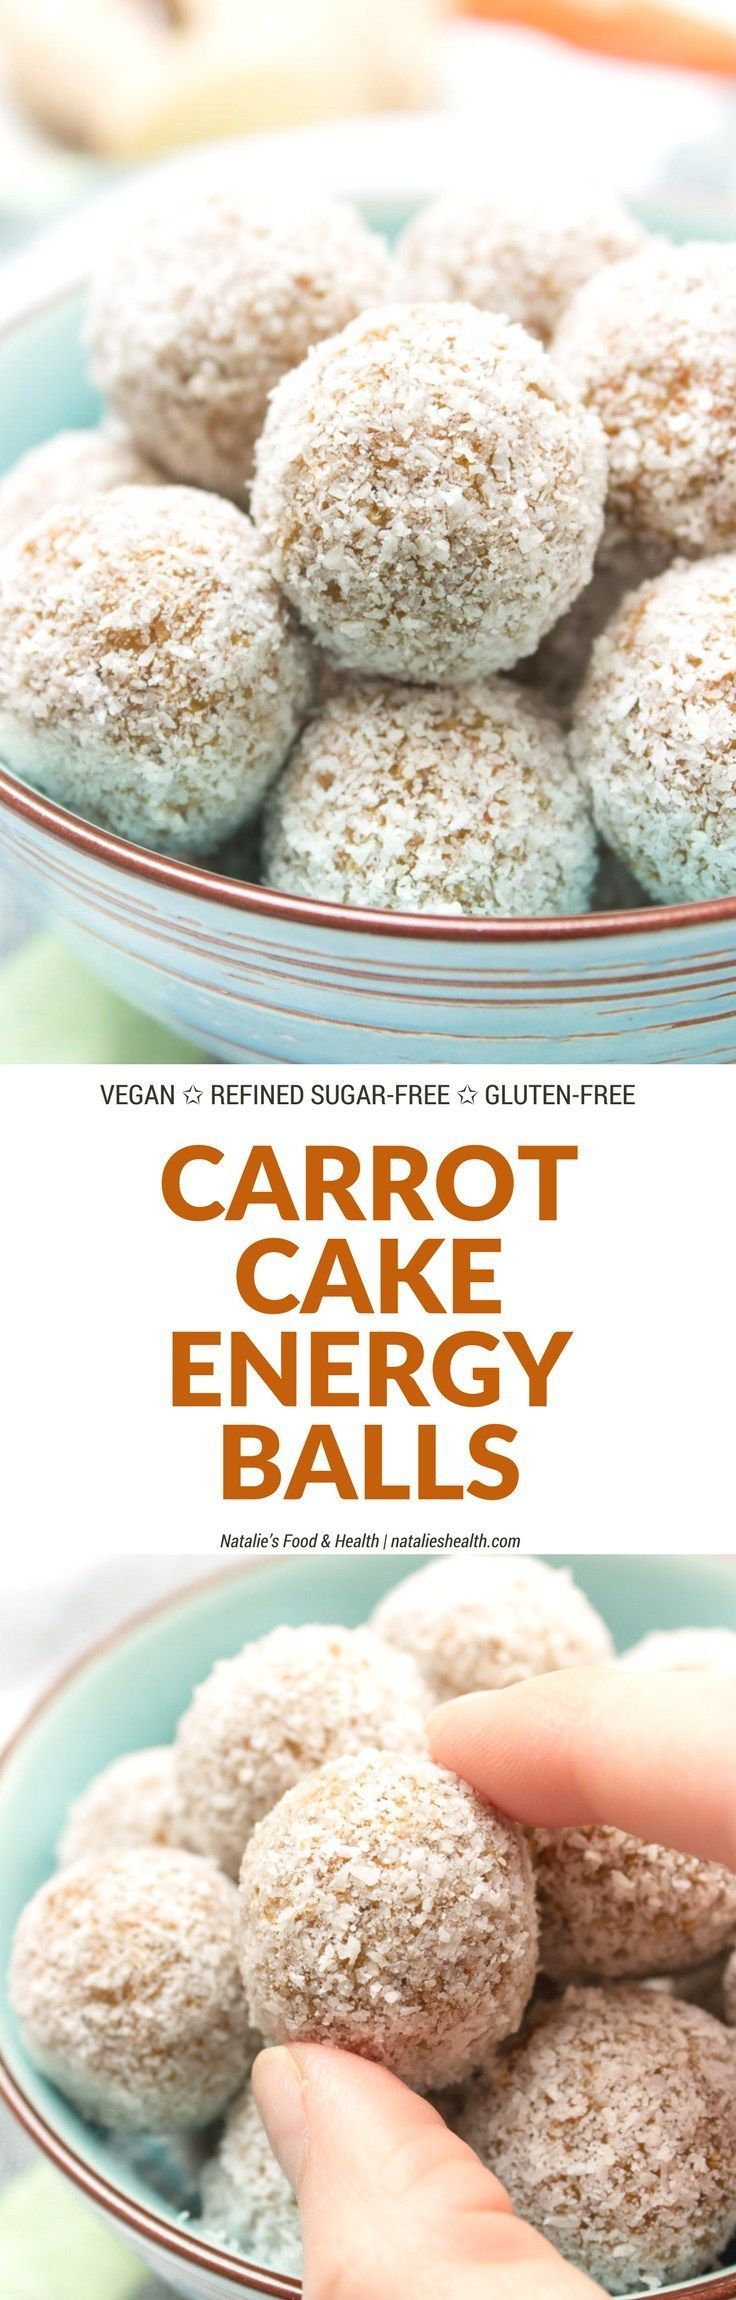 Raw no-bake Carrot Cake Energy Balls made with all HEALTHY ingredients. These yummy bites are refined sugar-free, gluten-free and vegan. Perfect snack, a post-workout snack or simple dessert. | http://natalieshealth.com |